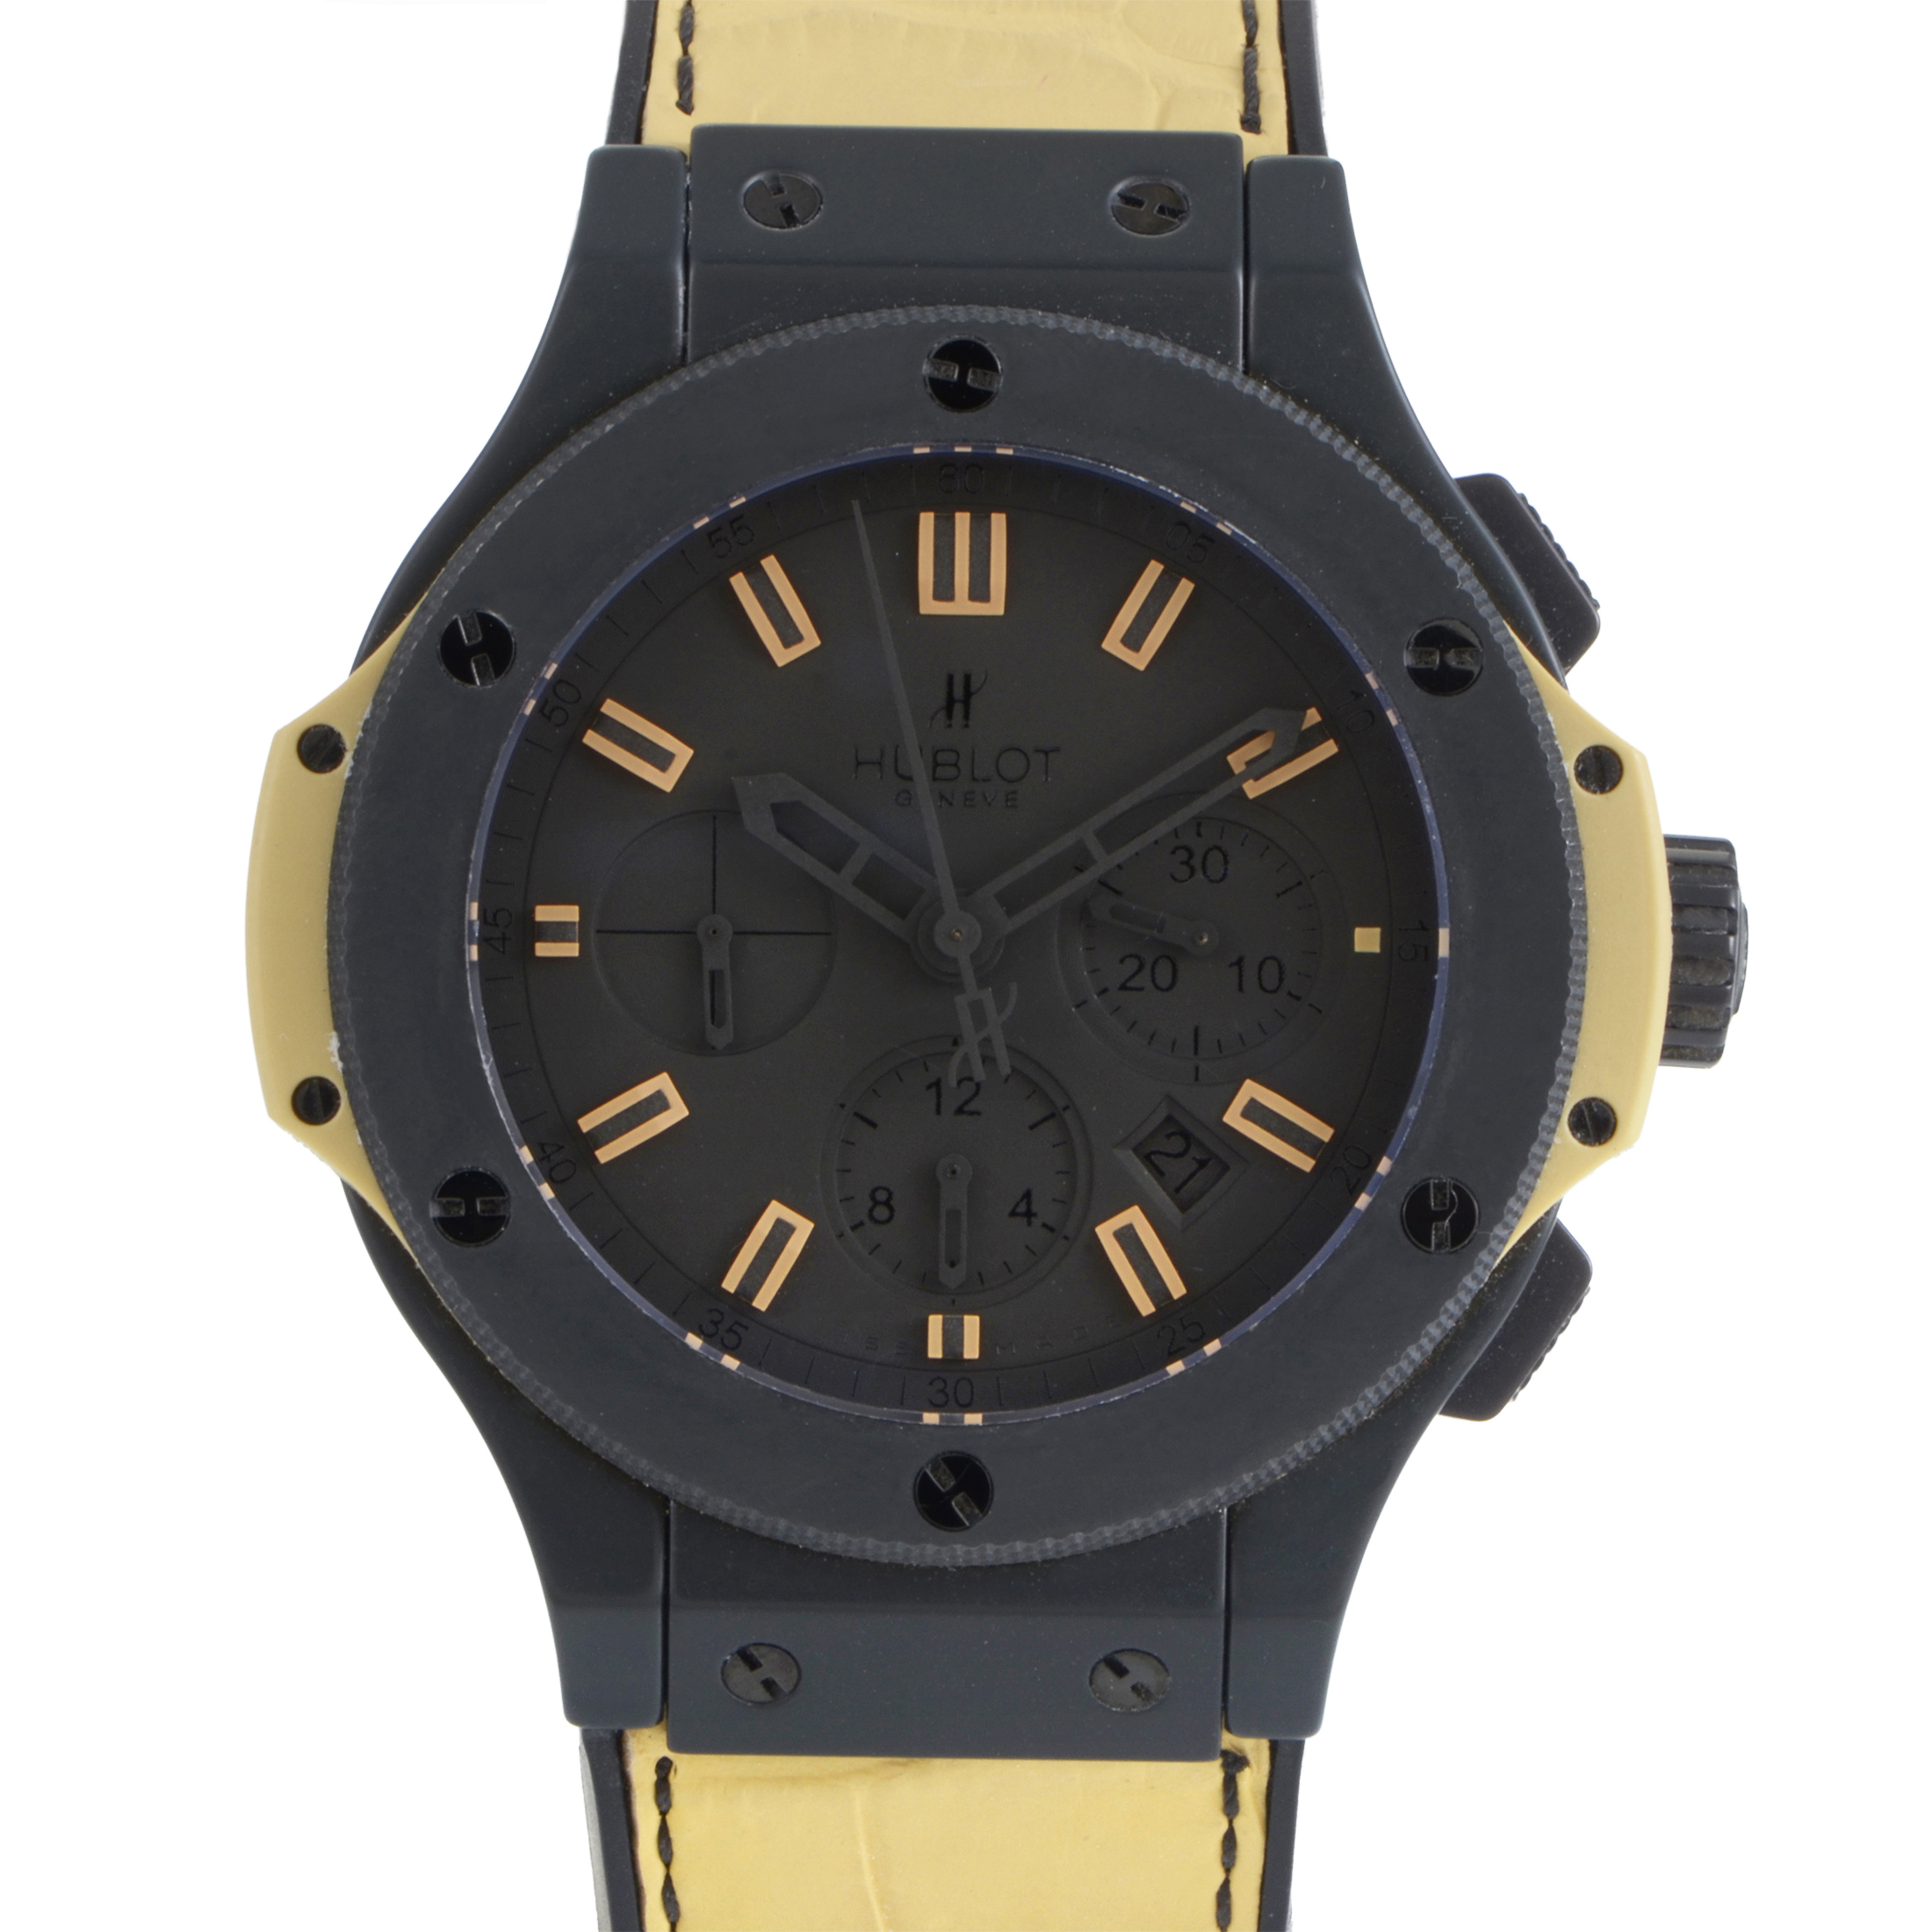 Hublot Big Bang St. Tropez Boutique Edition Chronograph Watch 301.07.12010